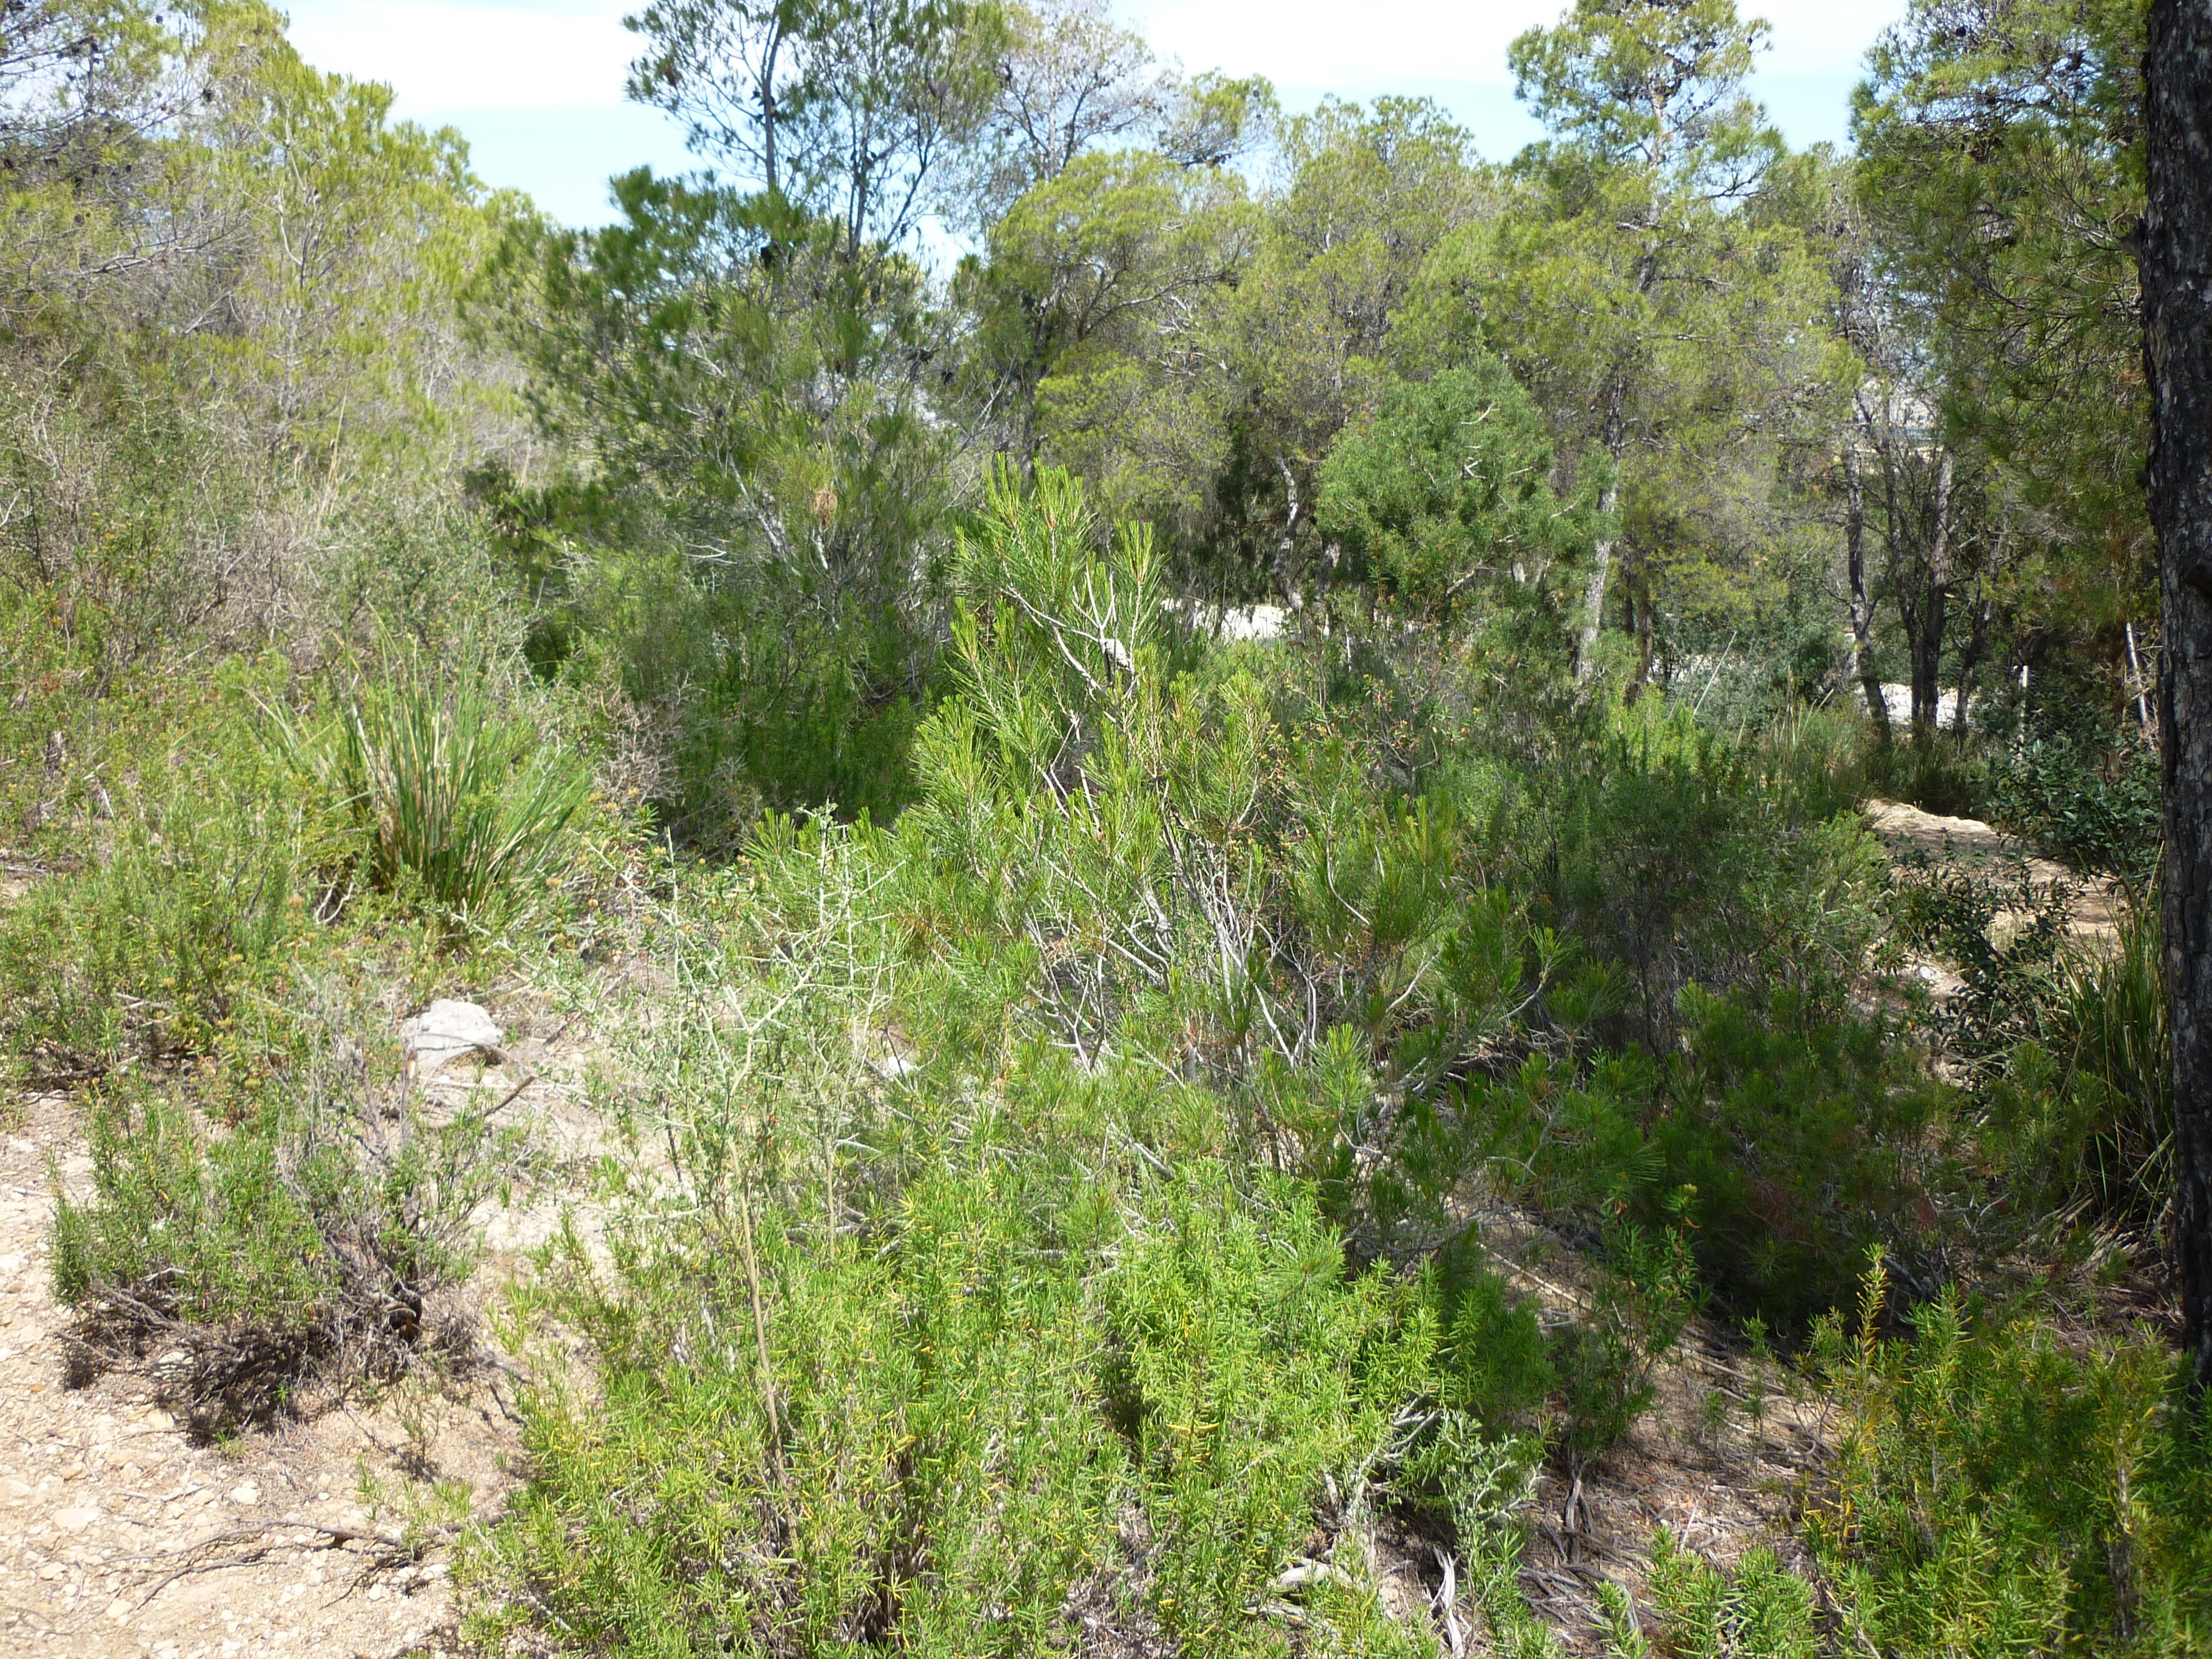 Distribution of Erica Multiflora and Cistus monspeliensis in natural Tunisian Aleppo pine forest.